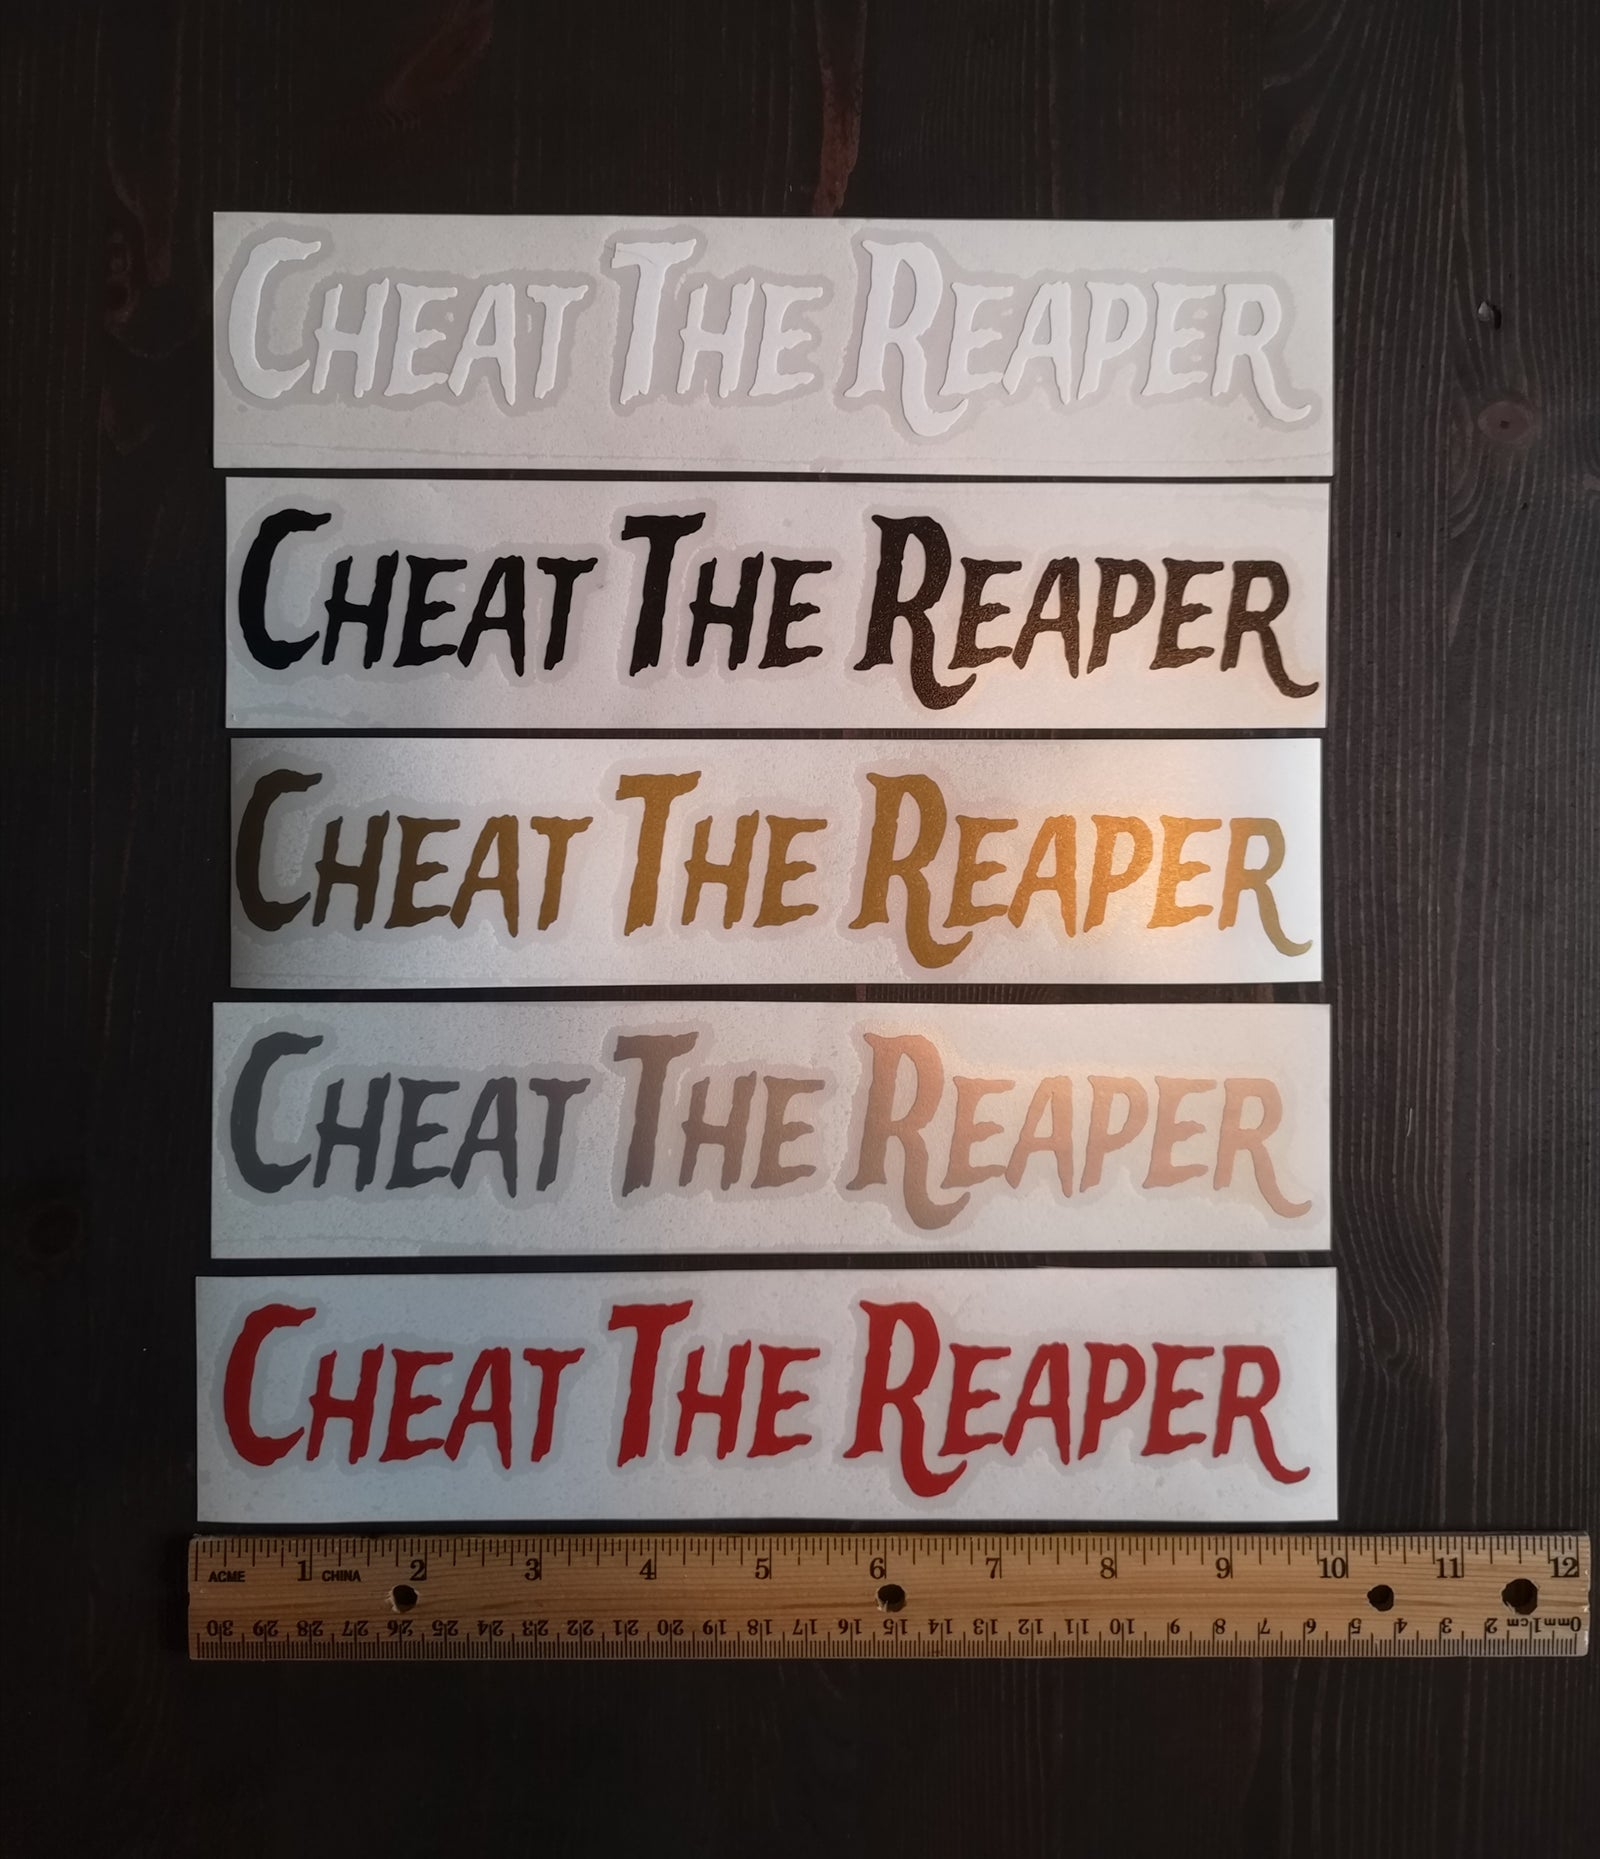 Cheat the reaper decal